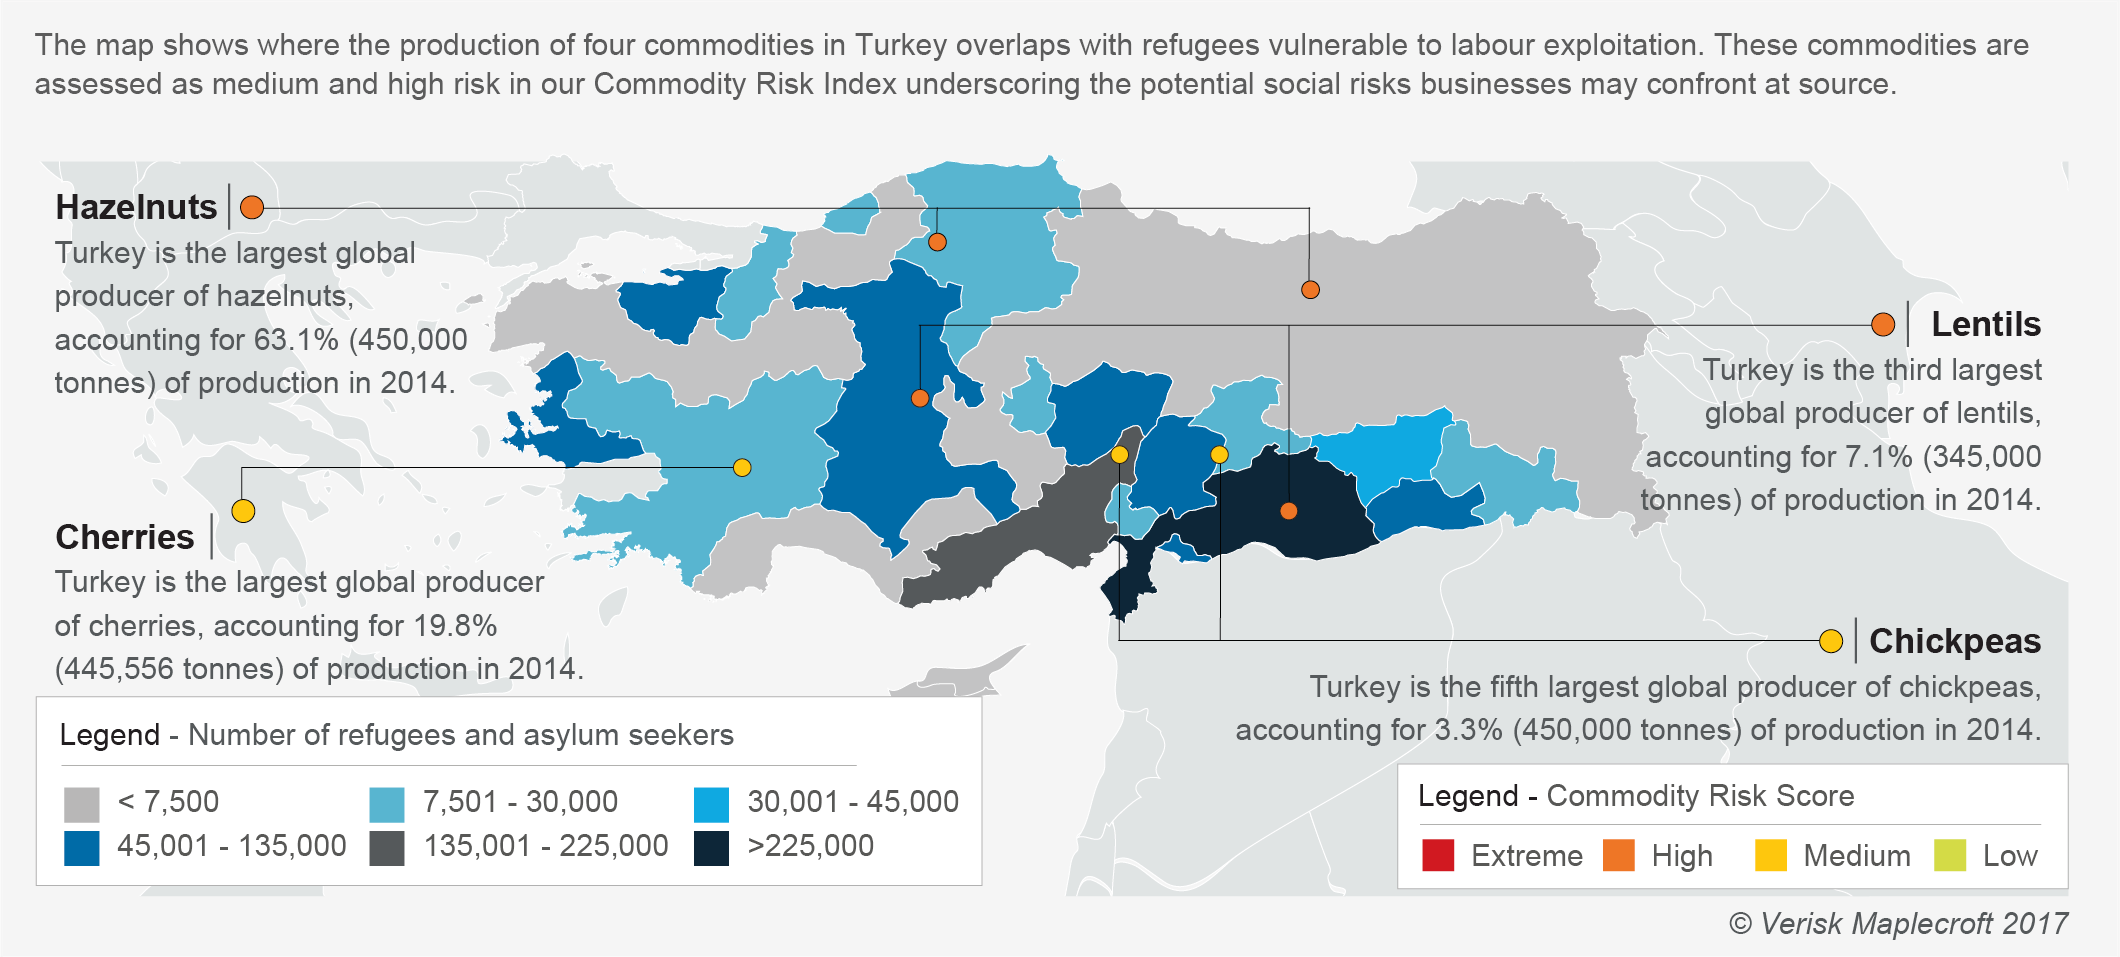 Turkey's refugee population and commodity production risks_HRO 2017 mandatory supply chain reporting